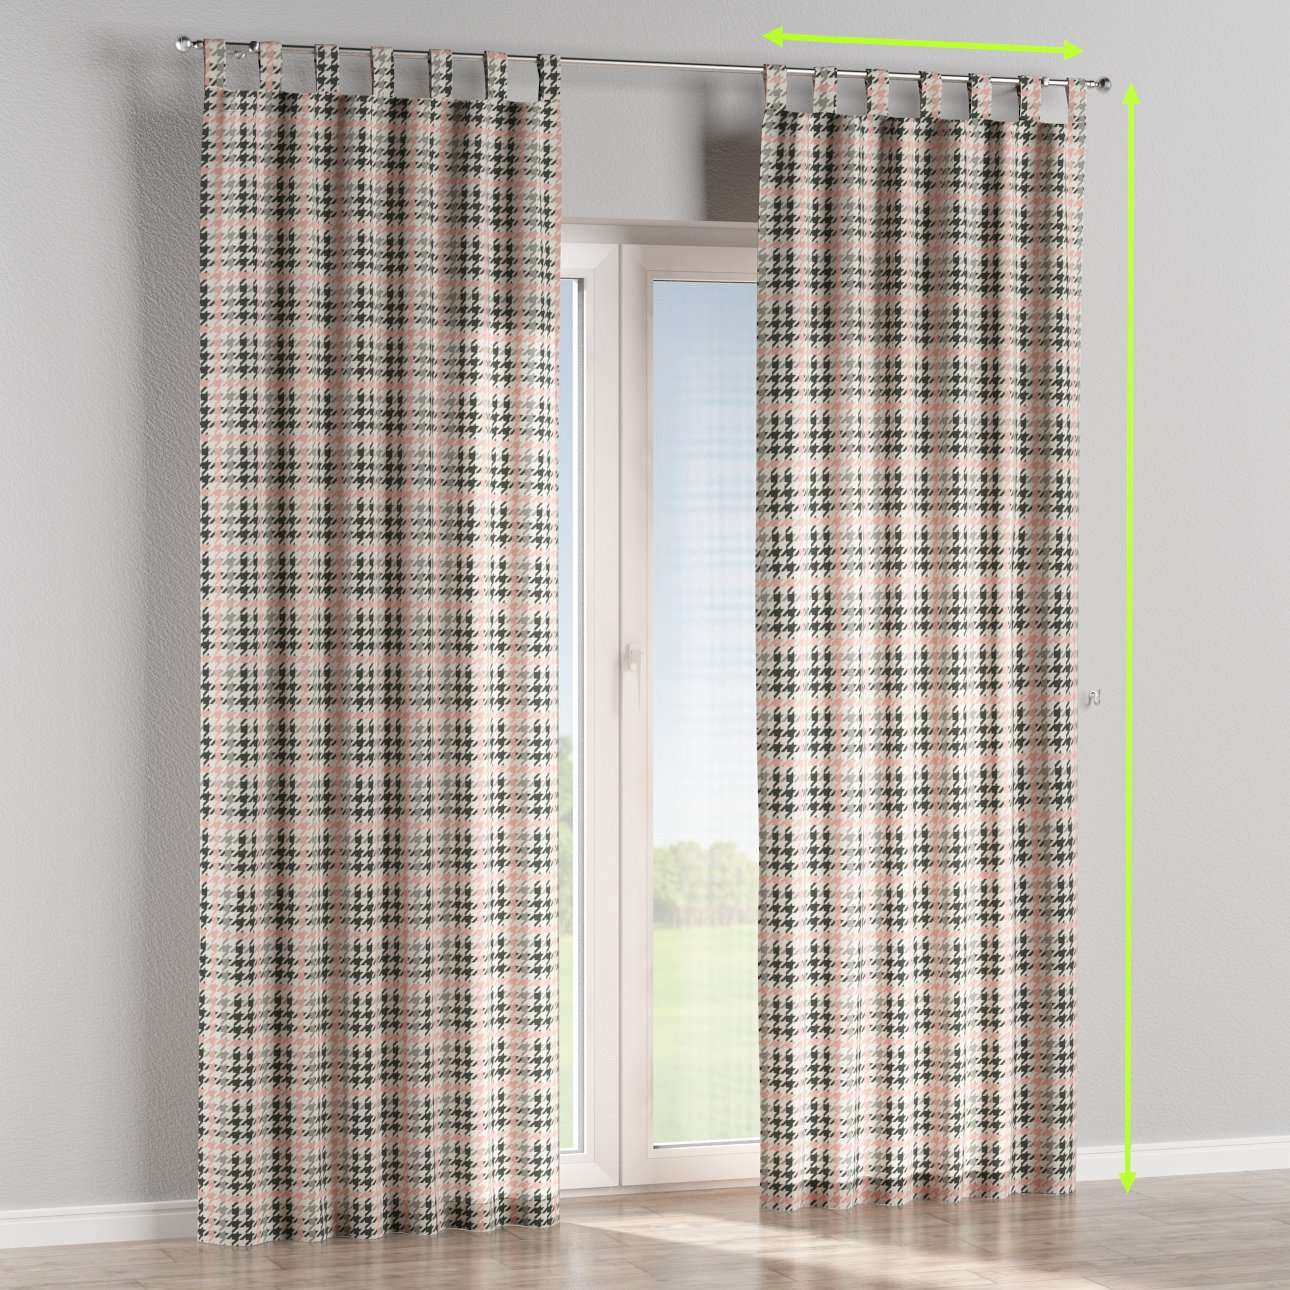 Tab top curtains in collection Brooklyn, fabric: 137-75